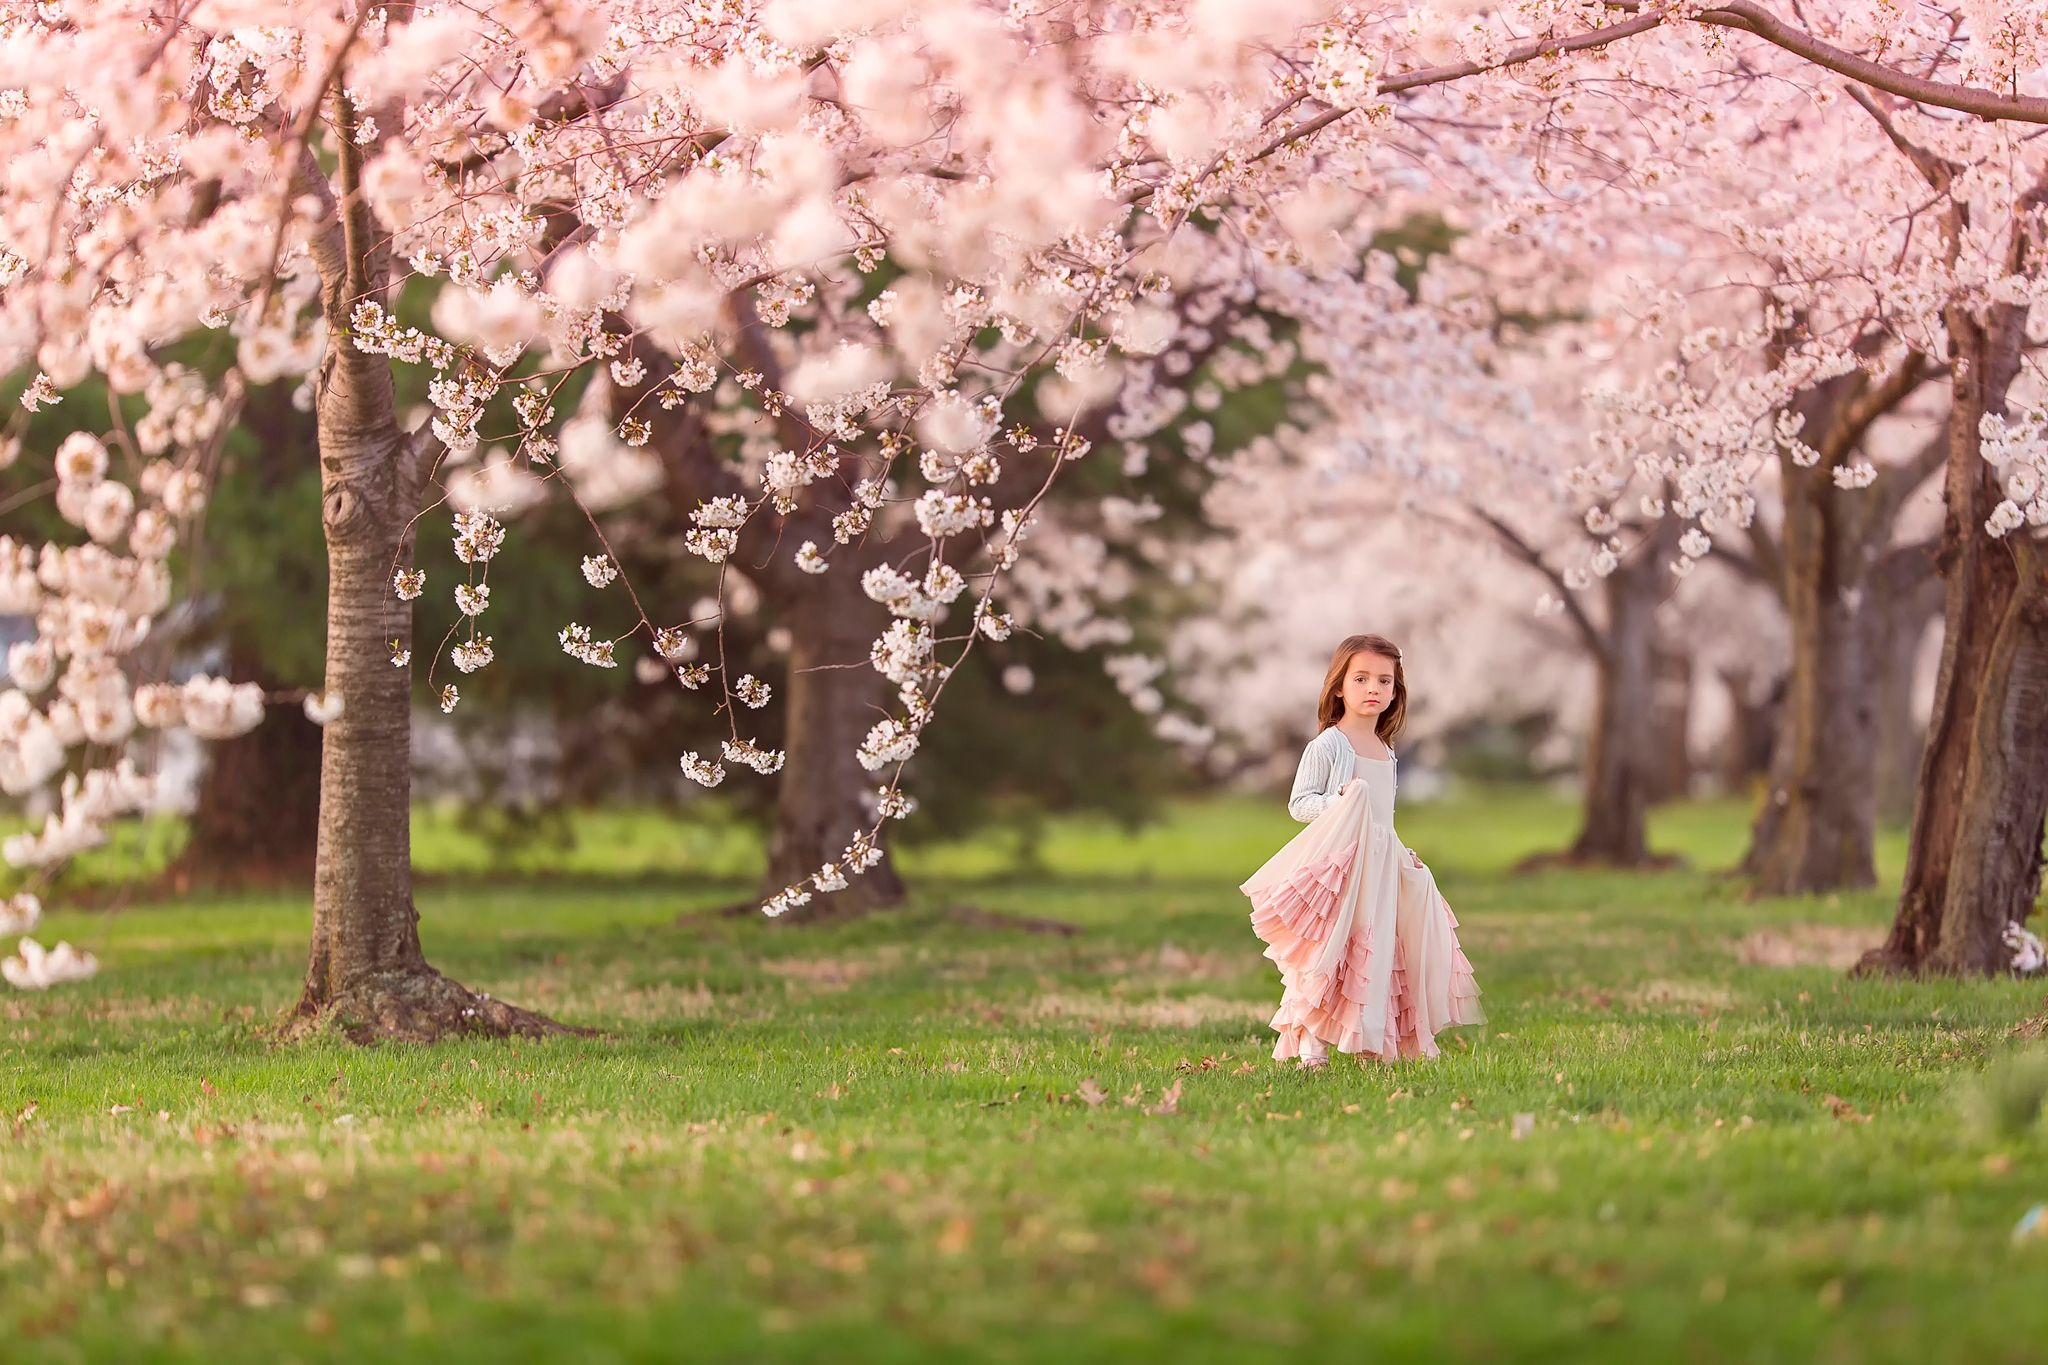 Spring Dress Child Pink Green Tree Little Hd Wallpaper 1970363 2 Cherry Blossom Pictures Spring Family Pictures Spring Pictures